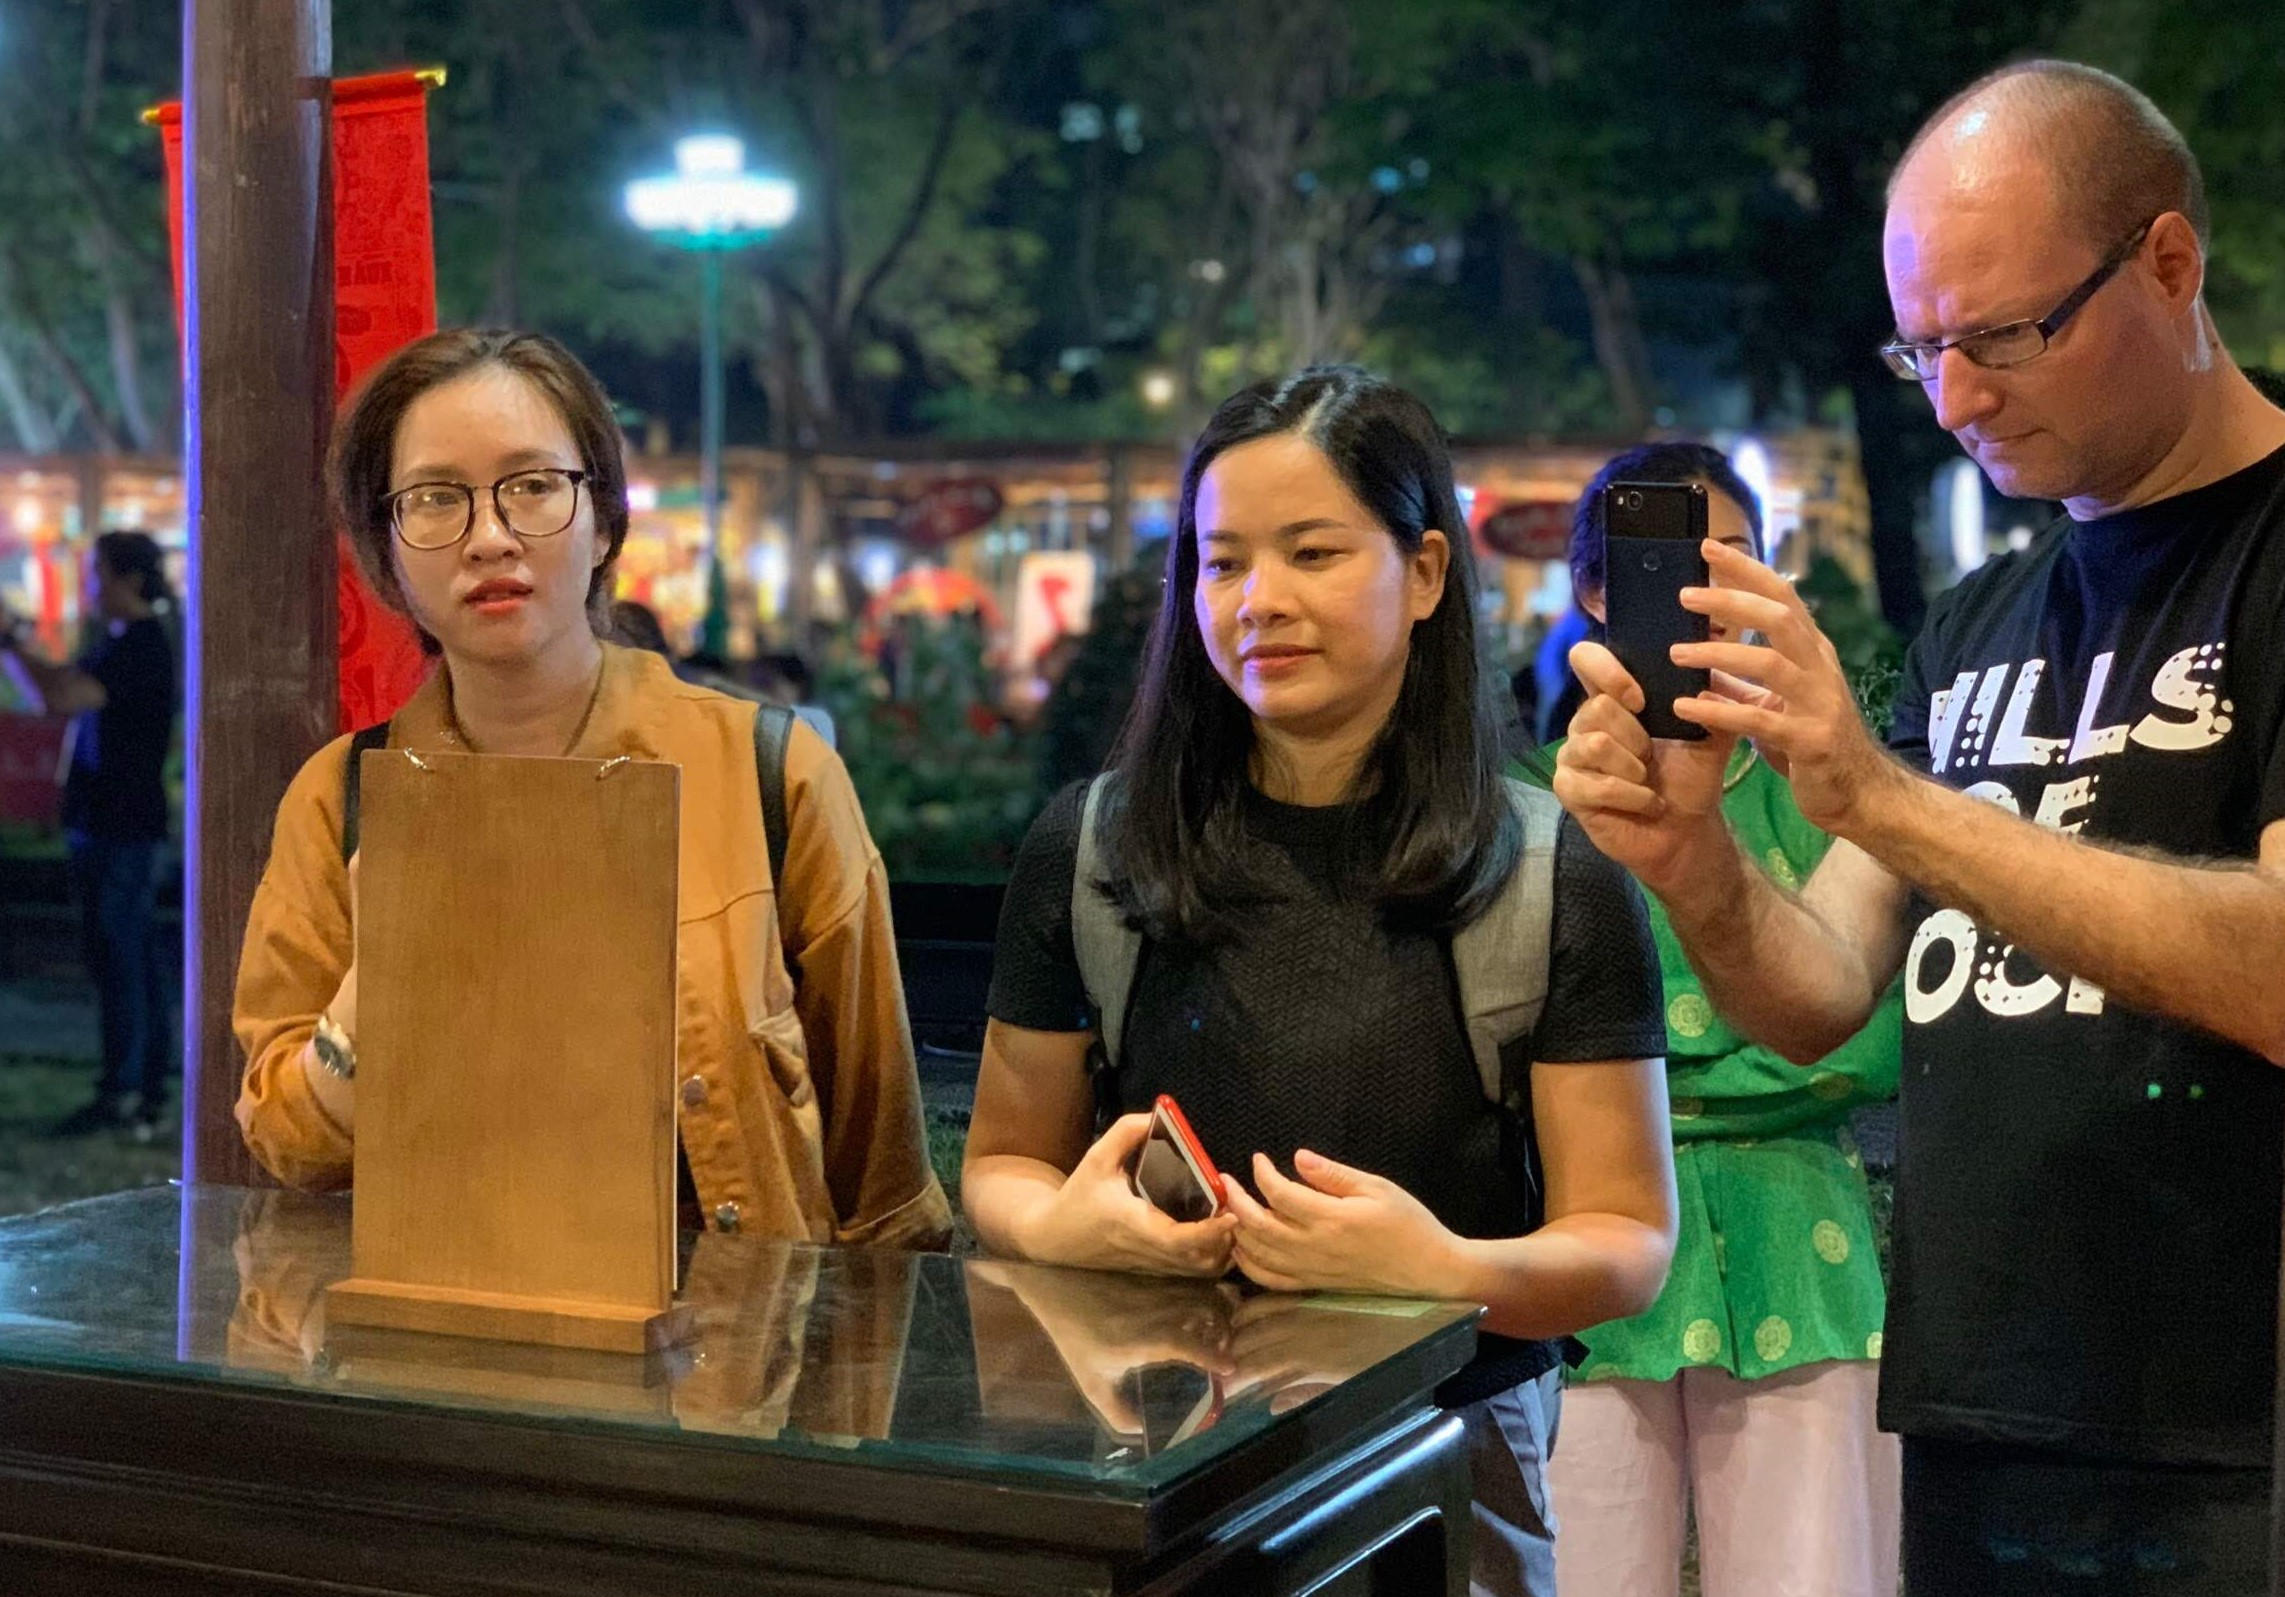 Bulgarian Hristo Ganev and his Vietnamese friends at the Tet Festival 2020 at Le Van Tam Park in Ho Chi Minh City's District 1 on January 3, 2020. Photo: Tuoi Tre News/ Bao Anh